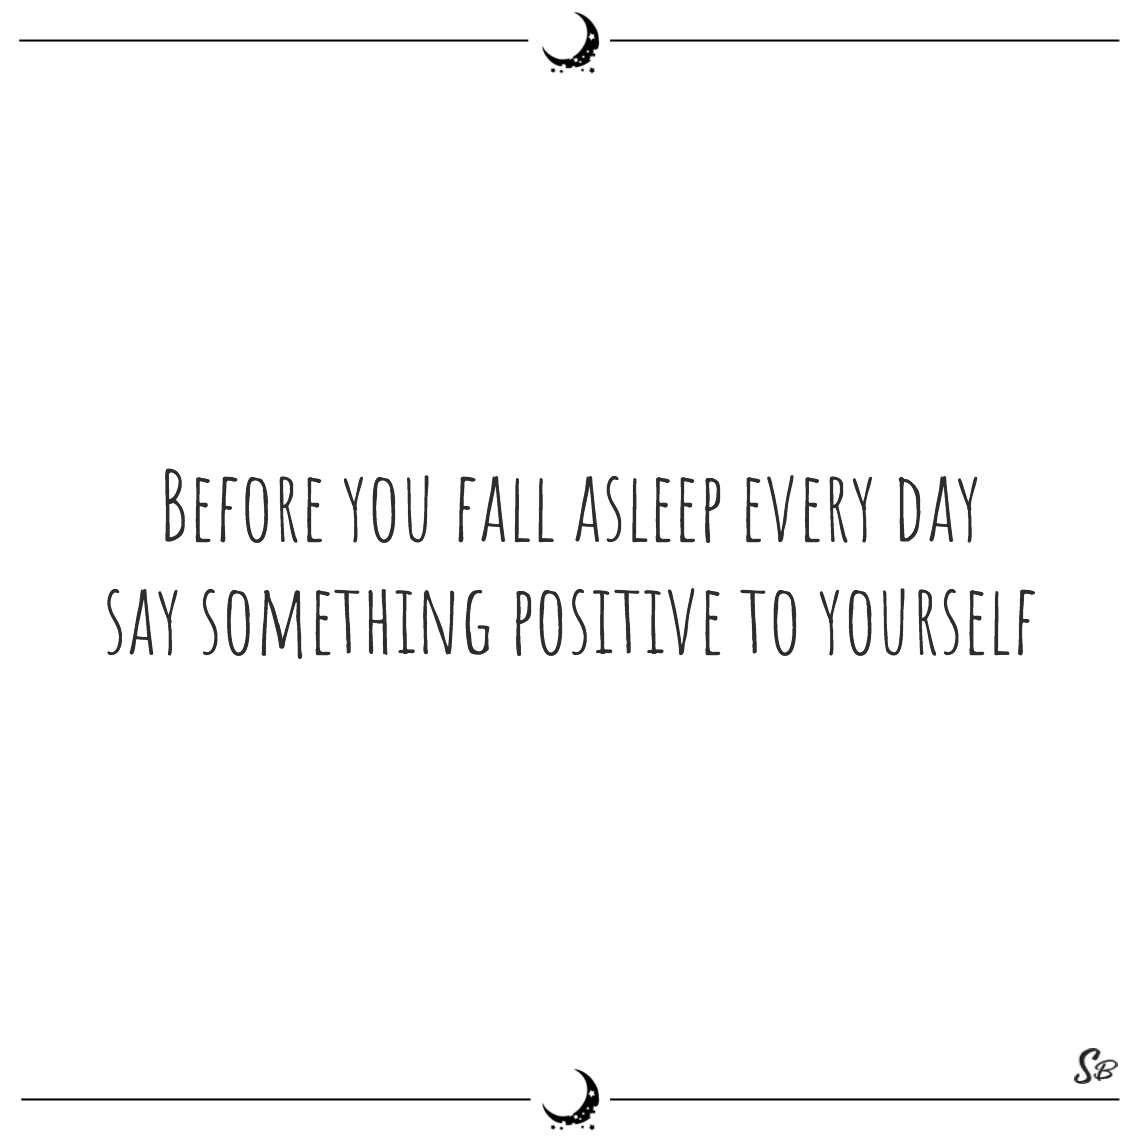 Before you fall asleep every day say something positive to yourself